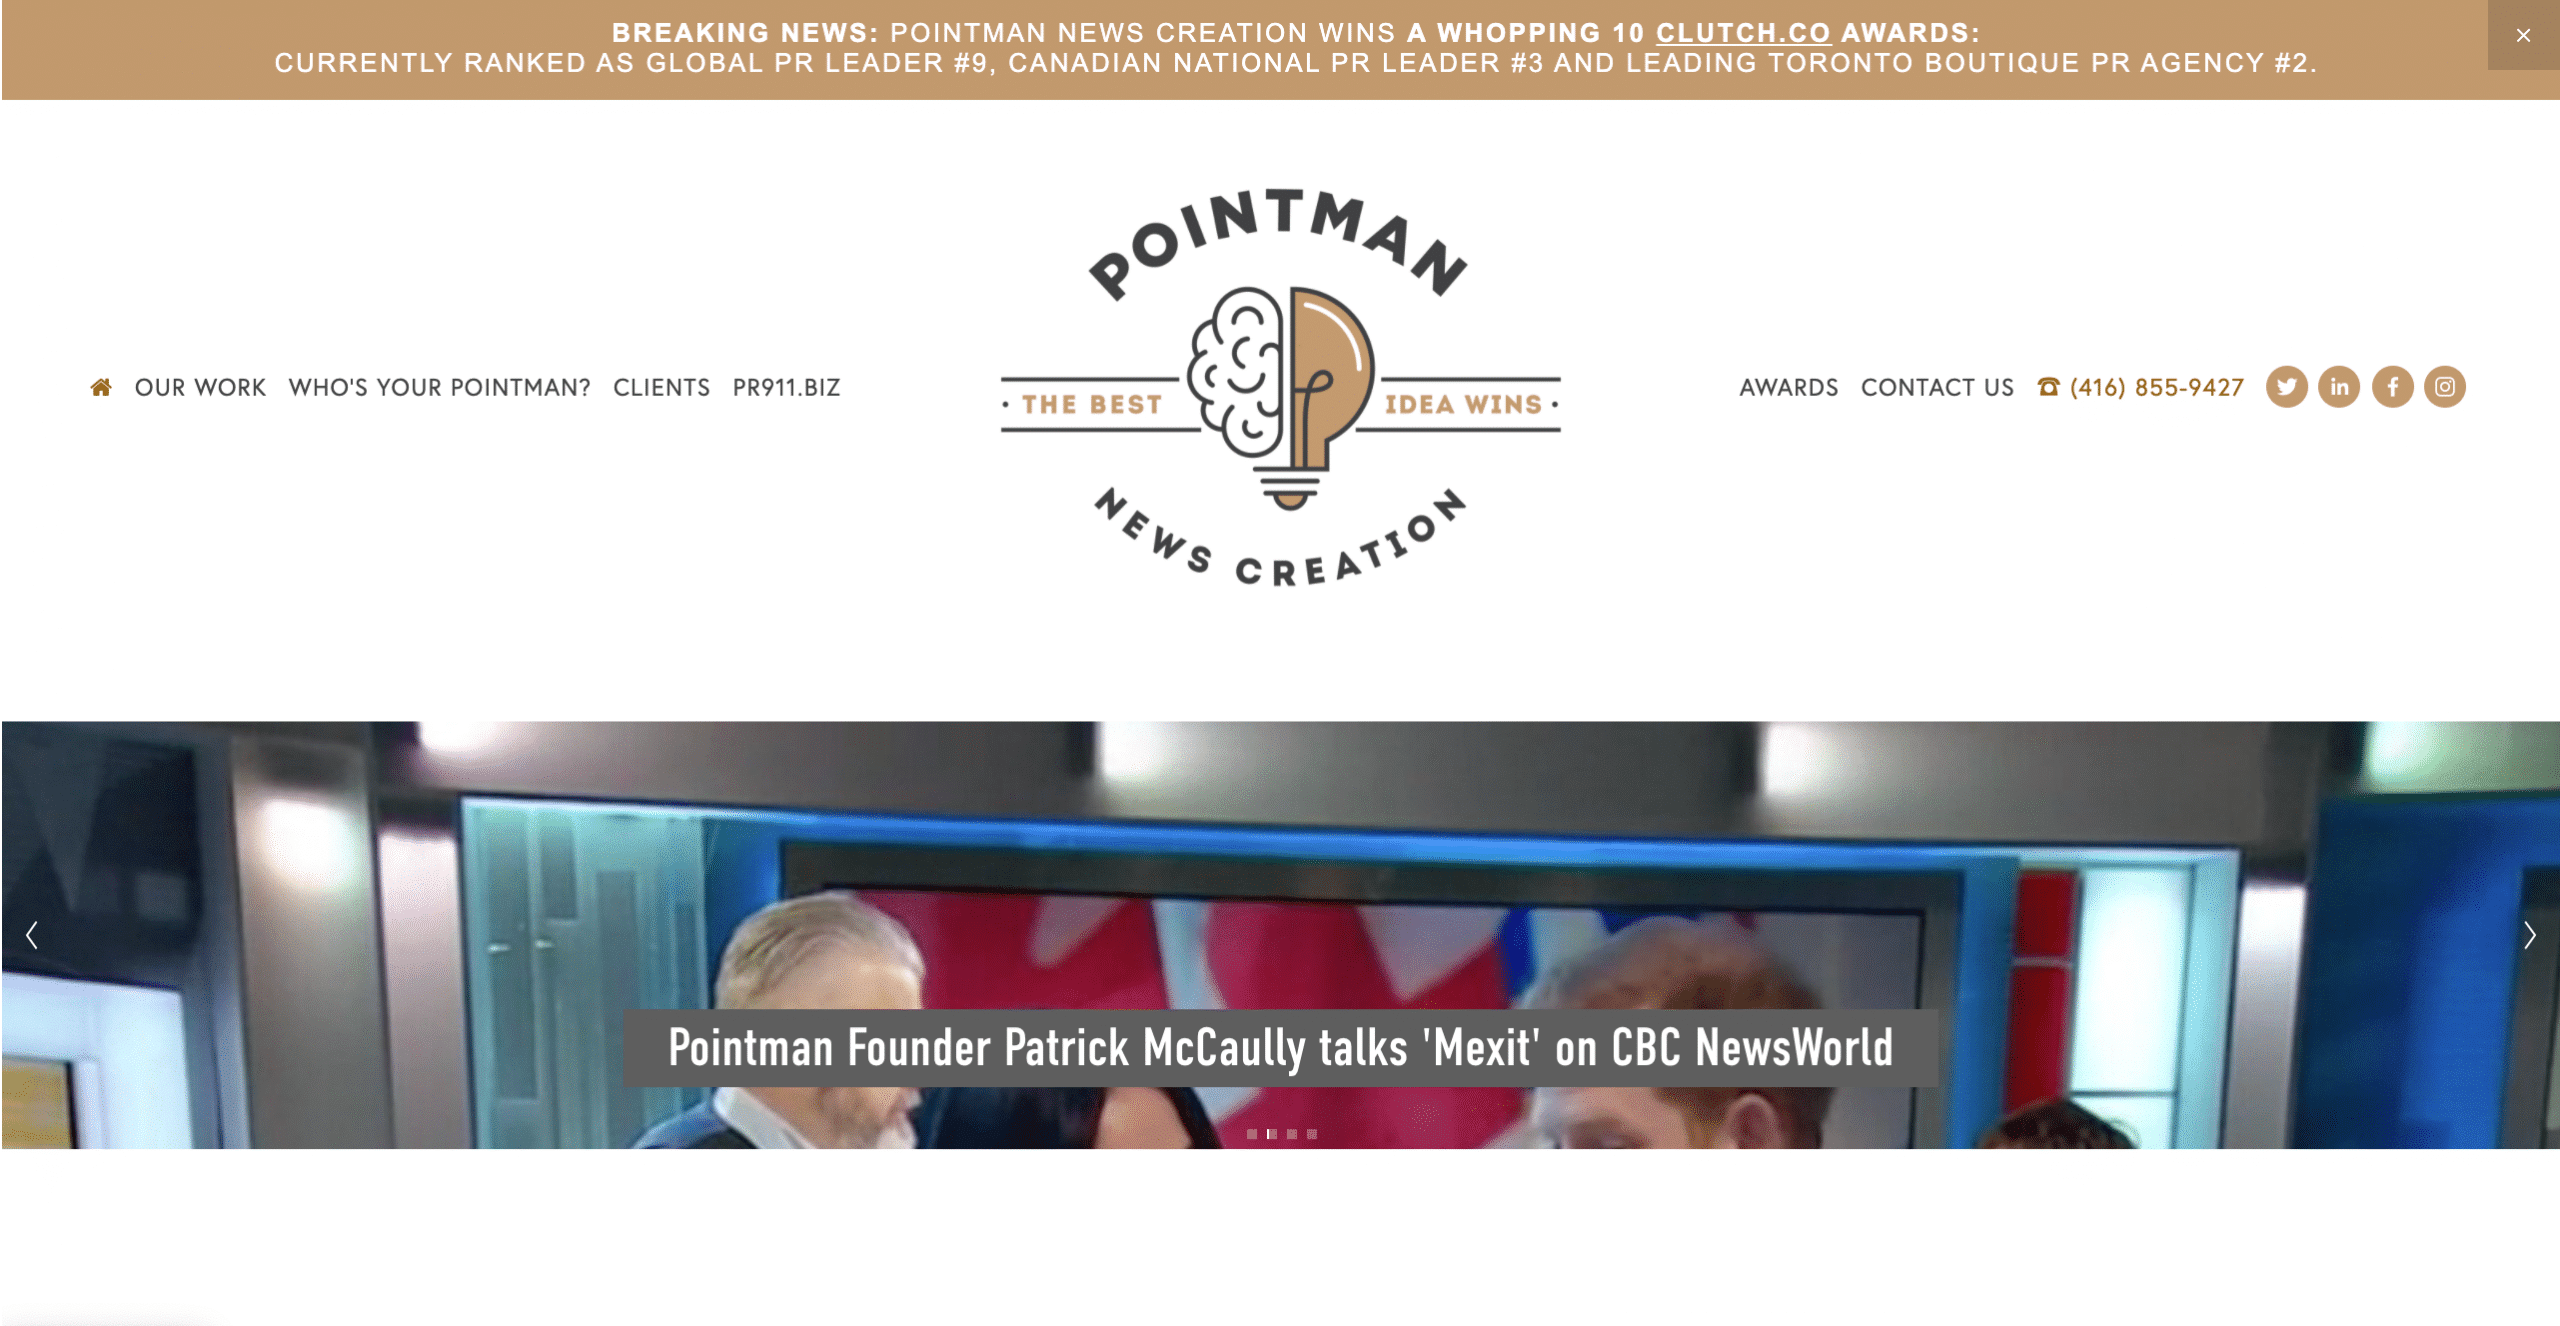 Pointman News Creation